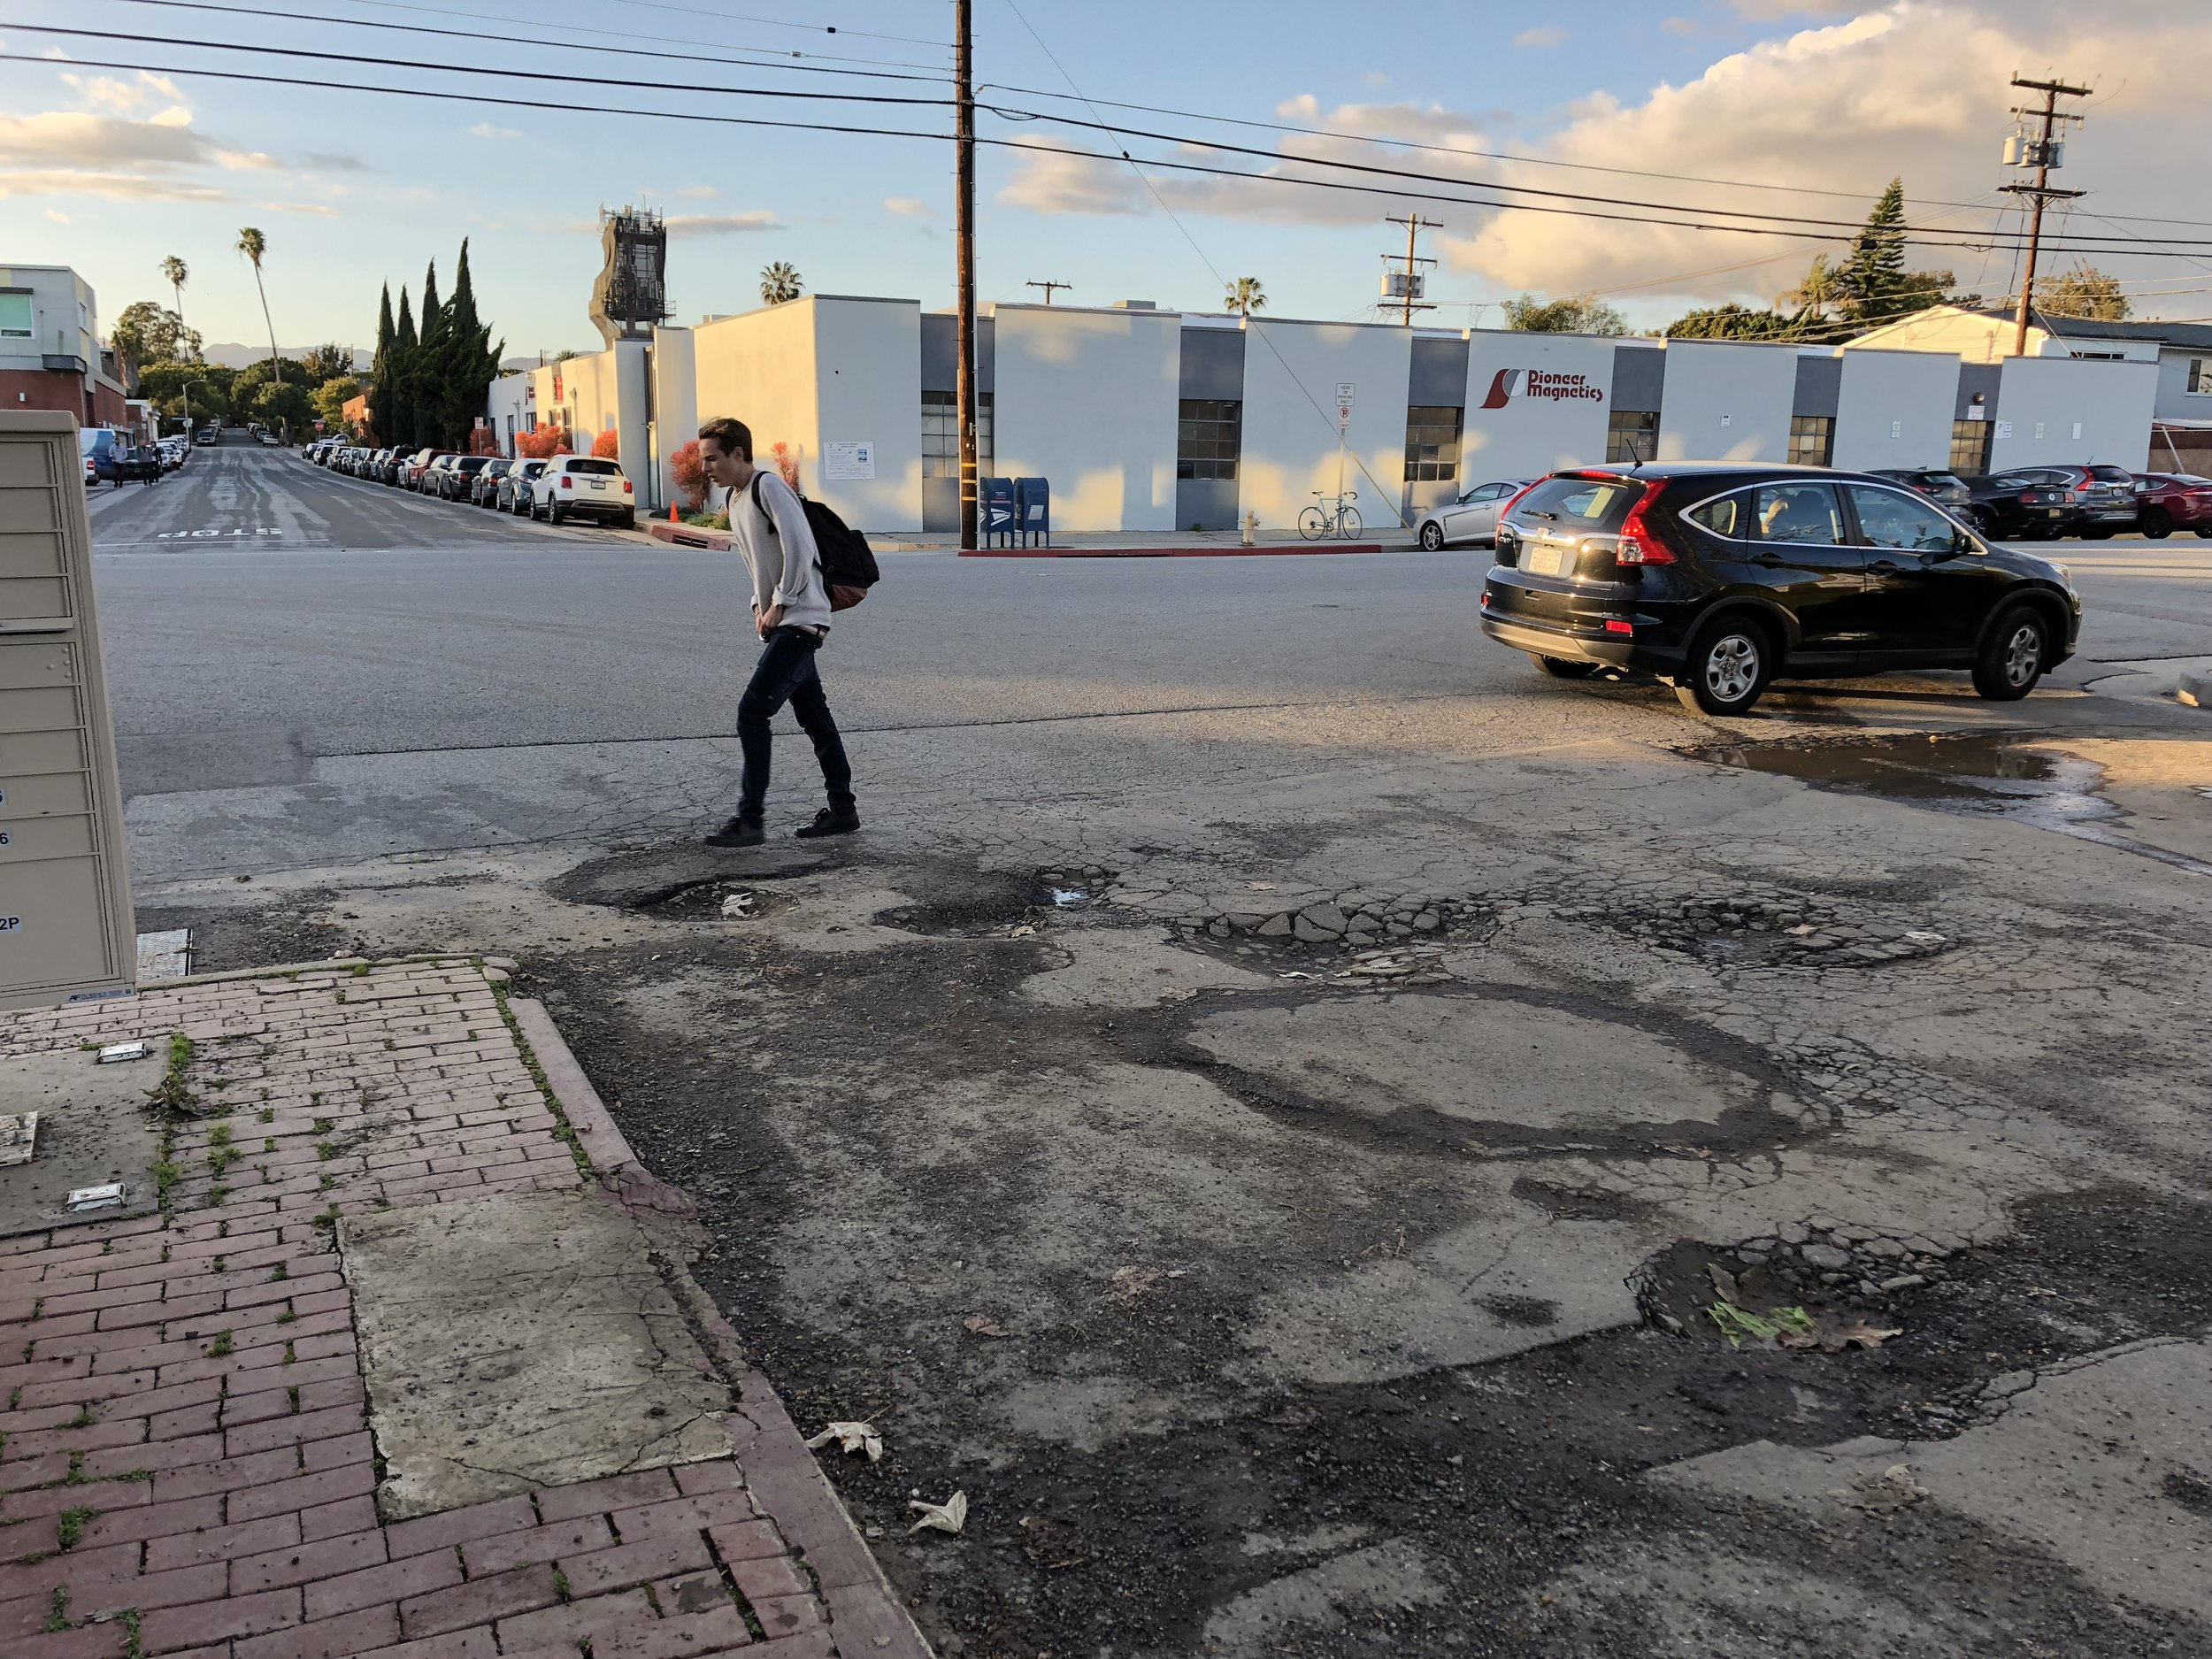 A pedestrian walks around a group of potholes at the intersection of Nebraska Ave and Berkeley St in Santa Monica on March 7, 2019. Santa Monica, California. Michael Fanelli / The Corsair.